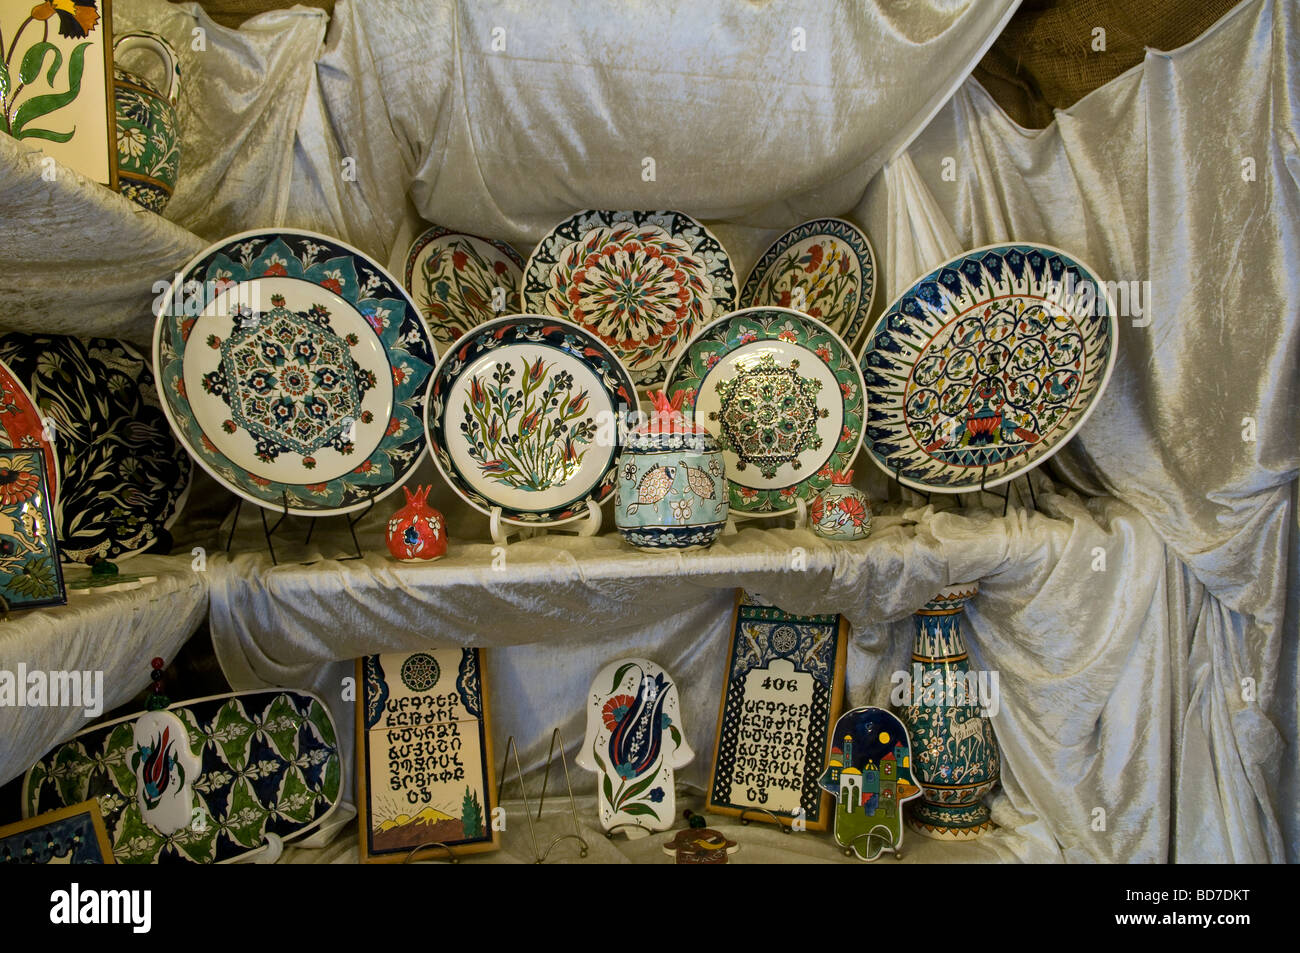 Hand painted ceramic plates at an armenian tile workshop east hand painted ceramic plates at an armenian tile workshop east jerusalem israel dailygadgetfo Images